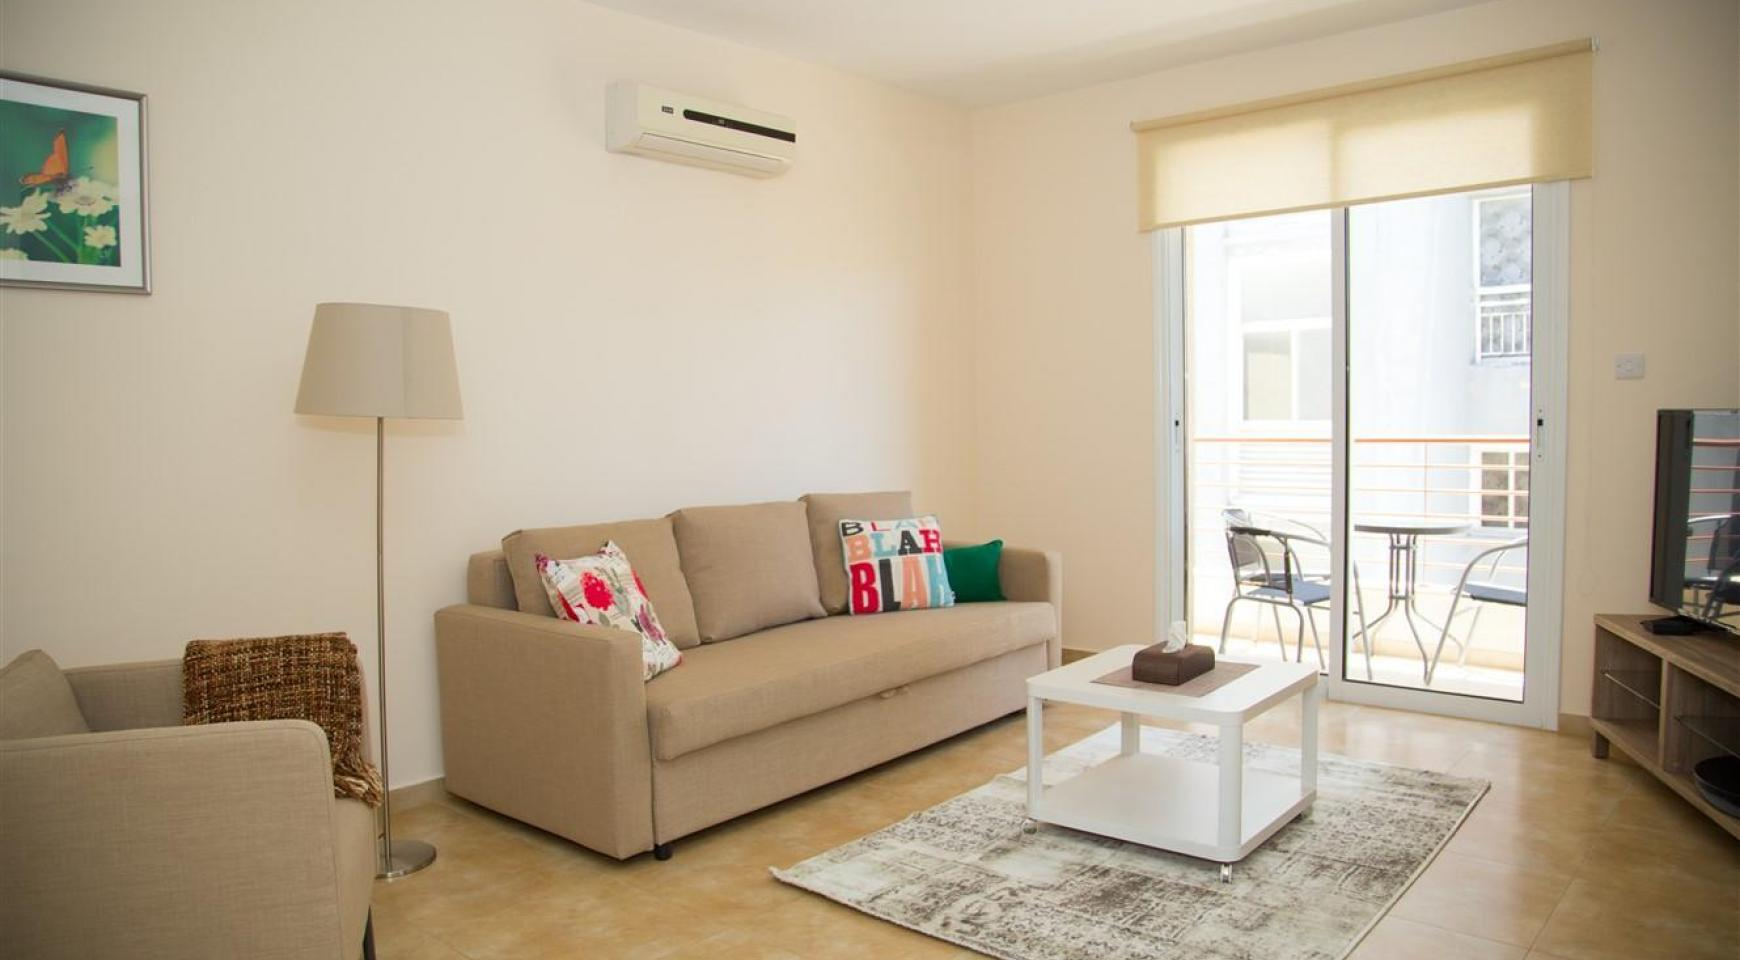 Luxury One Bedroom Apartment Frida 103 in the Tourist Area - 2